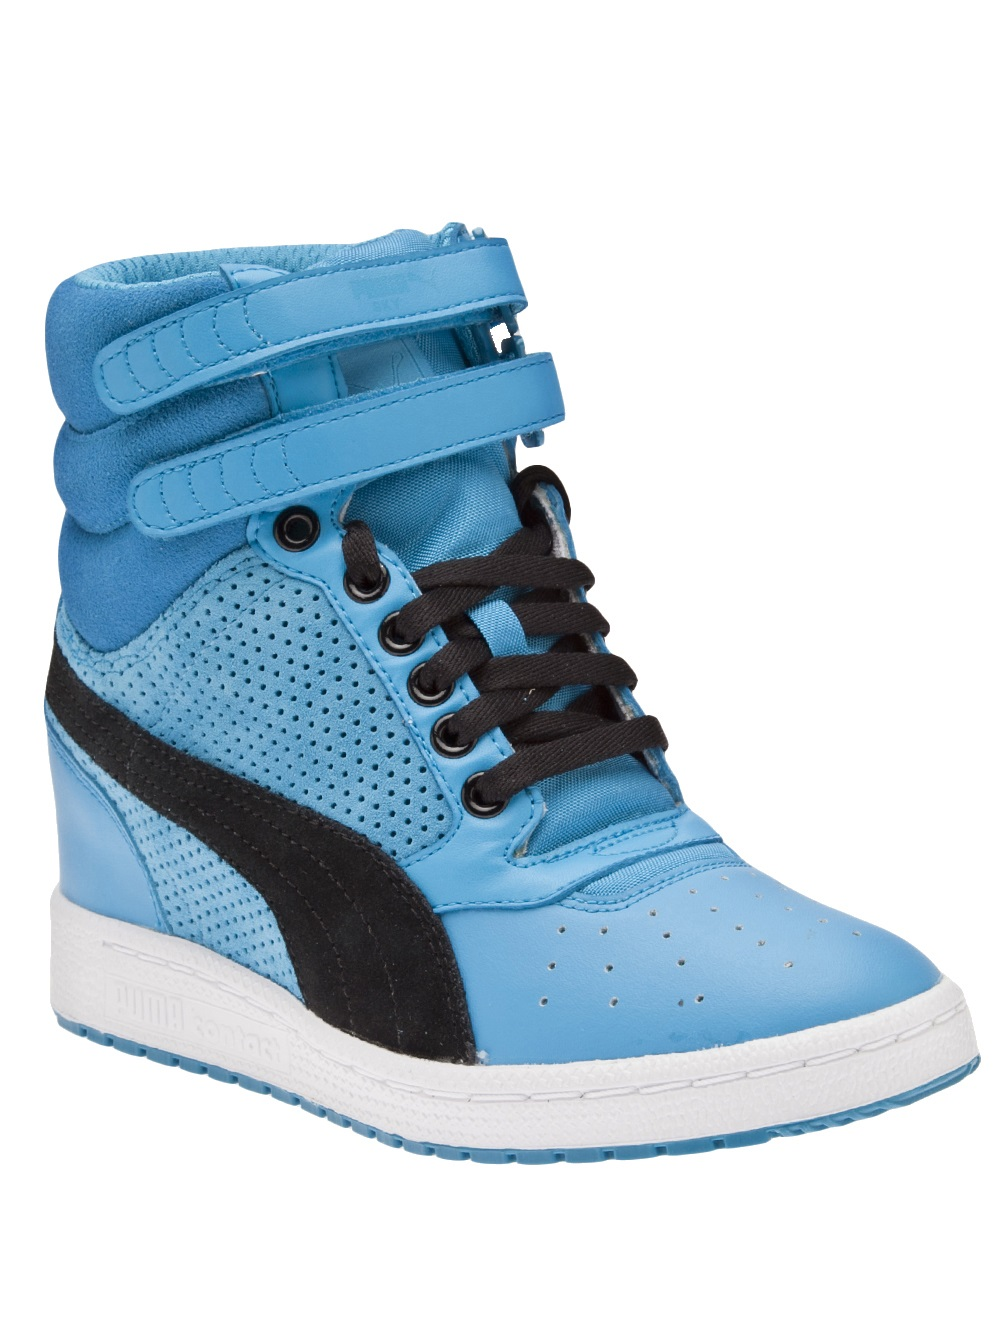 Puma Shoes For Women High Tops Wearpointwindfarm Co Uk